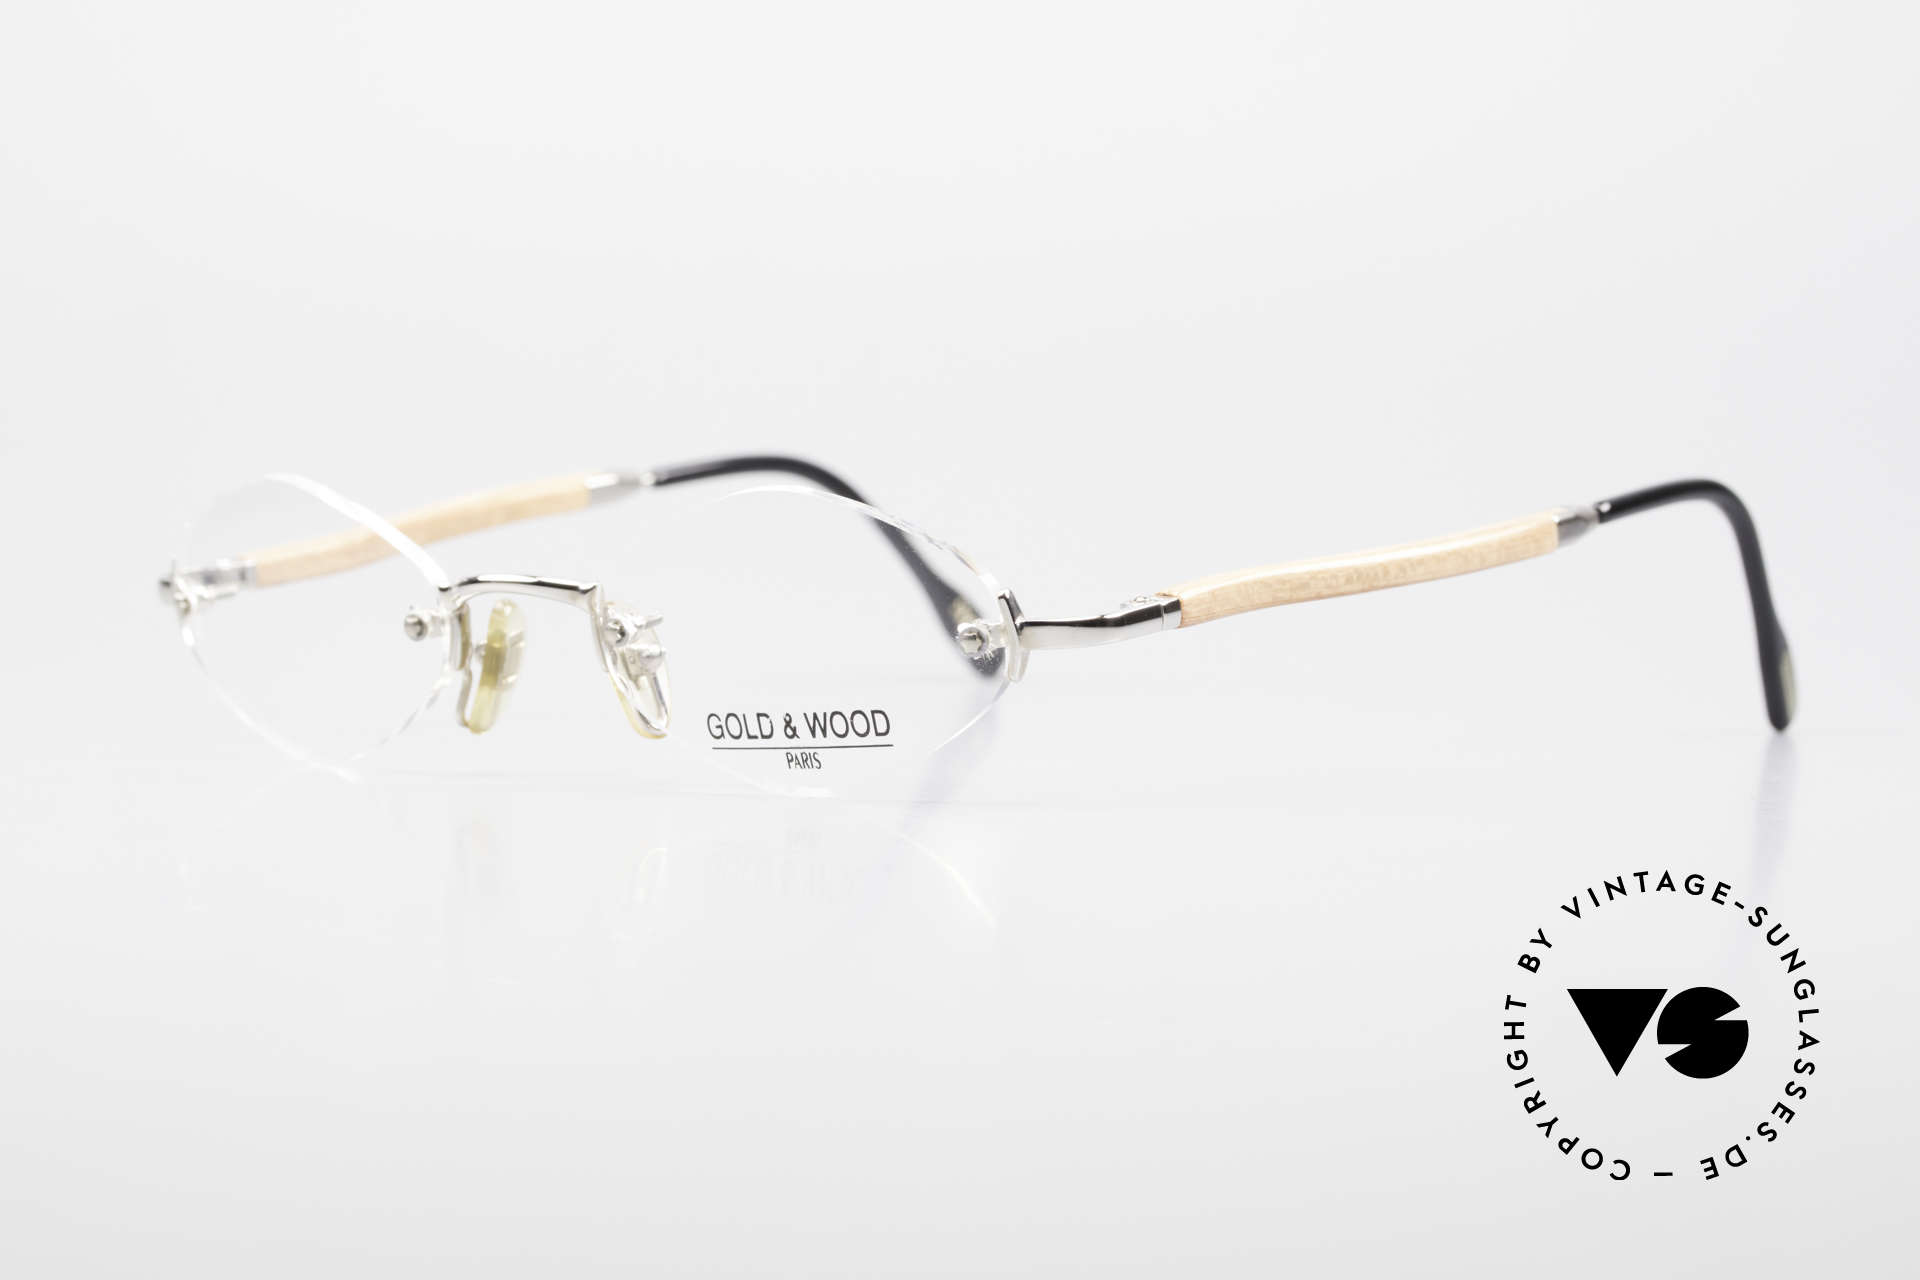 Gold & Wood S02 Luxury Rimless Spectacles, vintage unisex model with flexible spring hinges, Made for Men and Women